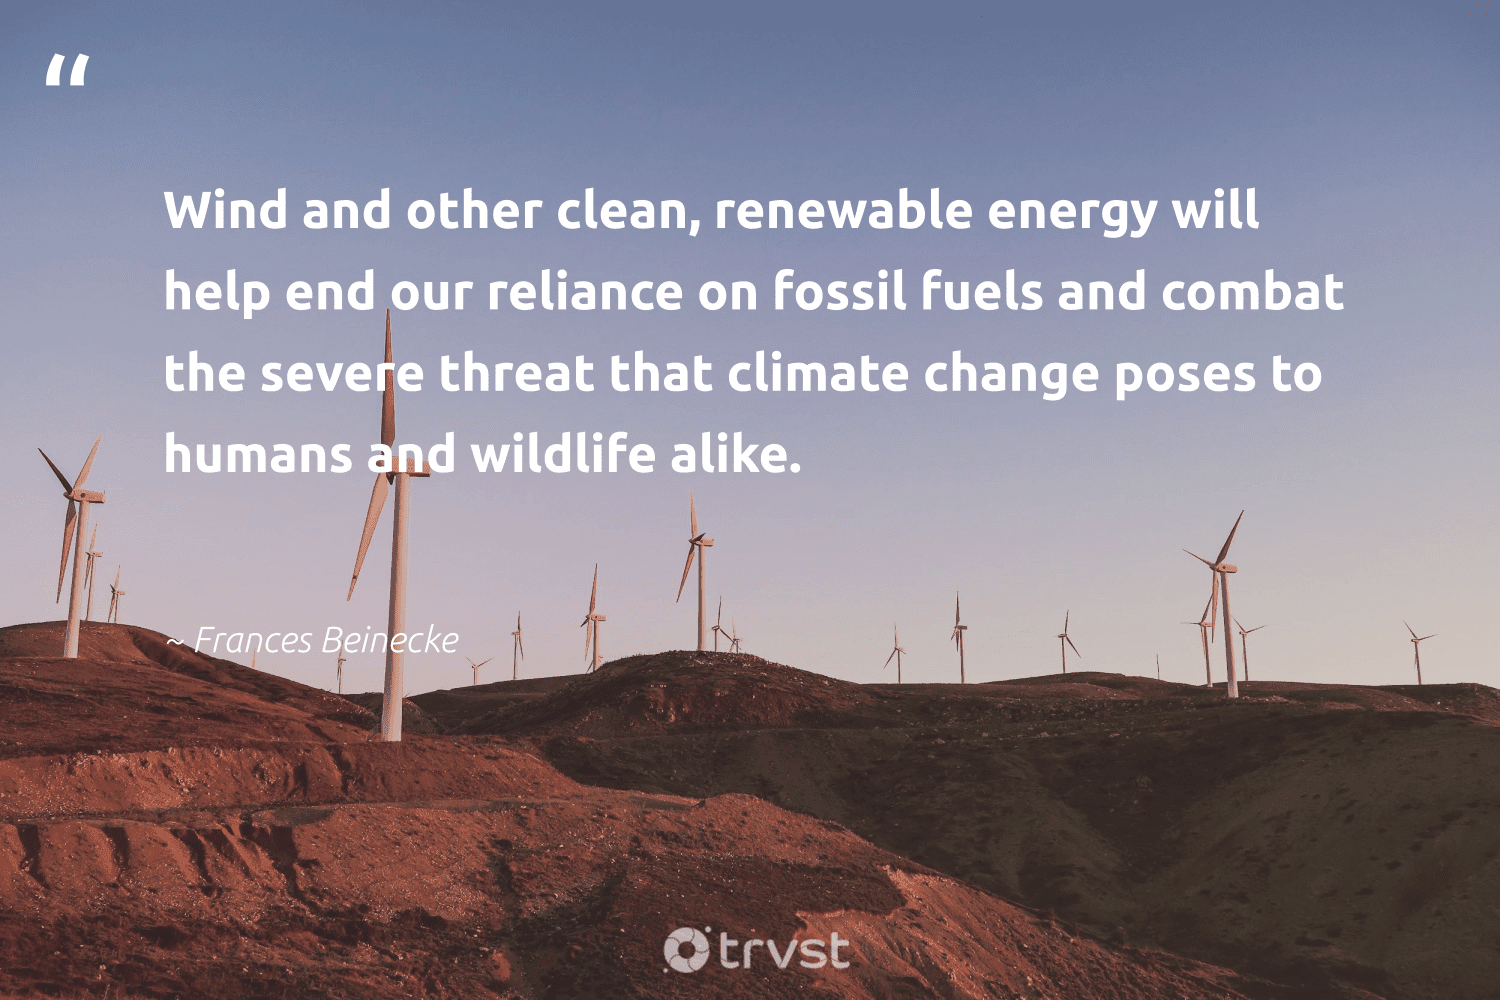 """""""Wind and other clean, renewable energy will help end our reliance on fossil fuels and combat the severe threat that climate change poses to humans and wildlife alike.""""  - Frances Beinecke #trvst #quotes #renewableenergy #climatechange #energy #renewable #fossilfuels #fossil #wildlife #climate #switchfuelenergy #cleanenergy"""